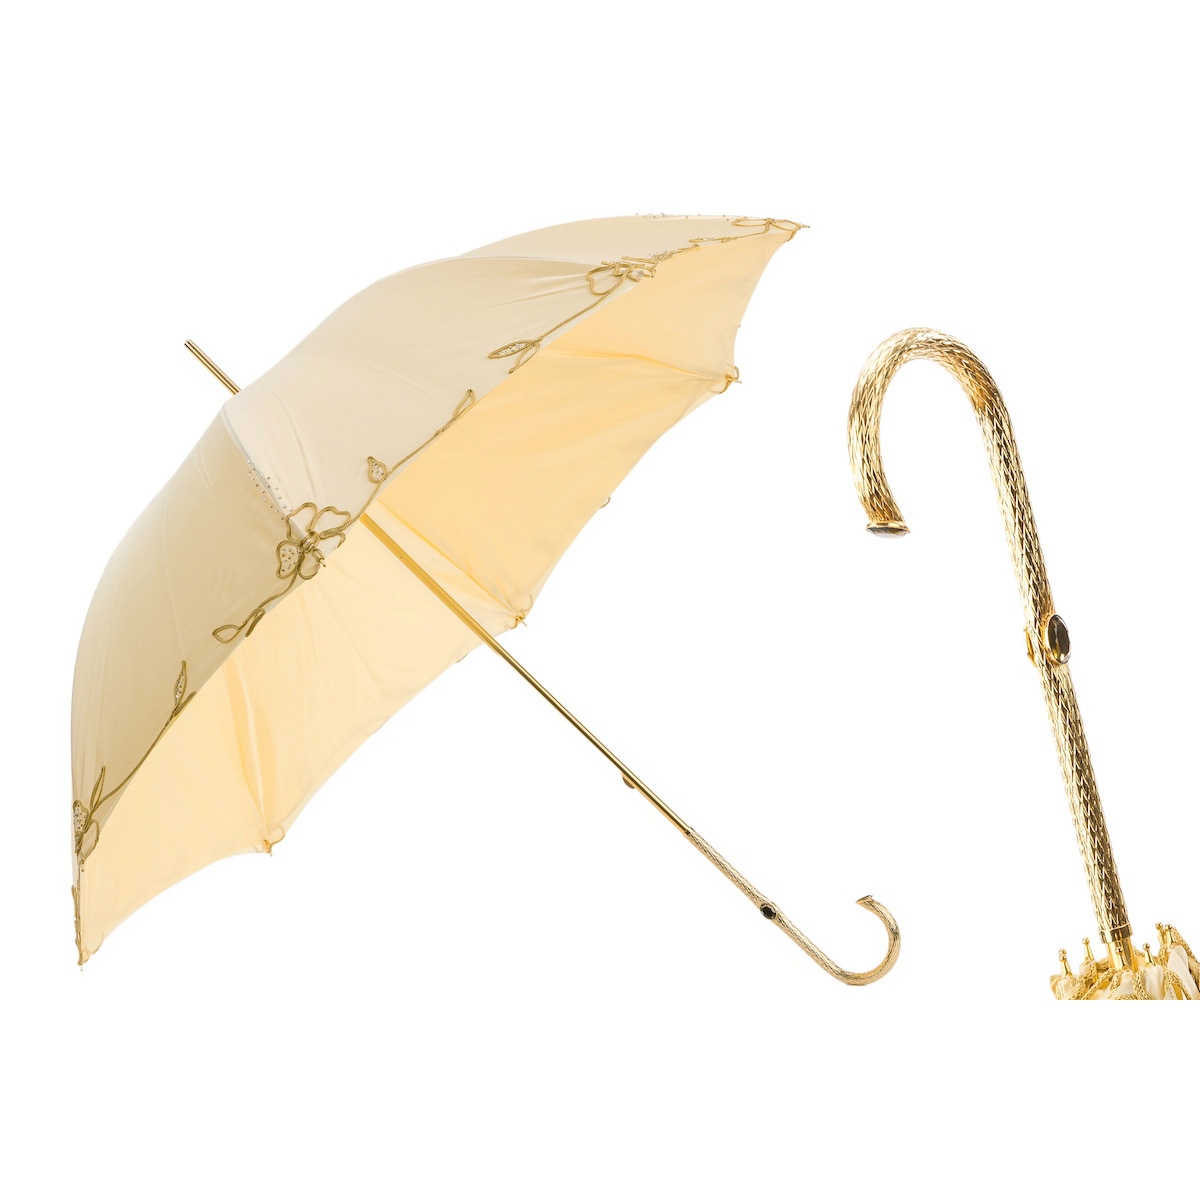 Pasotti Ombrelli Ivory Woman's Decorated Luxury Women's Umbrella